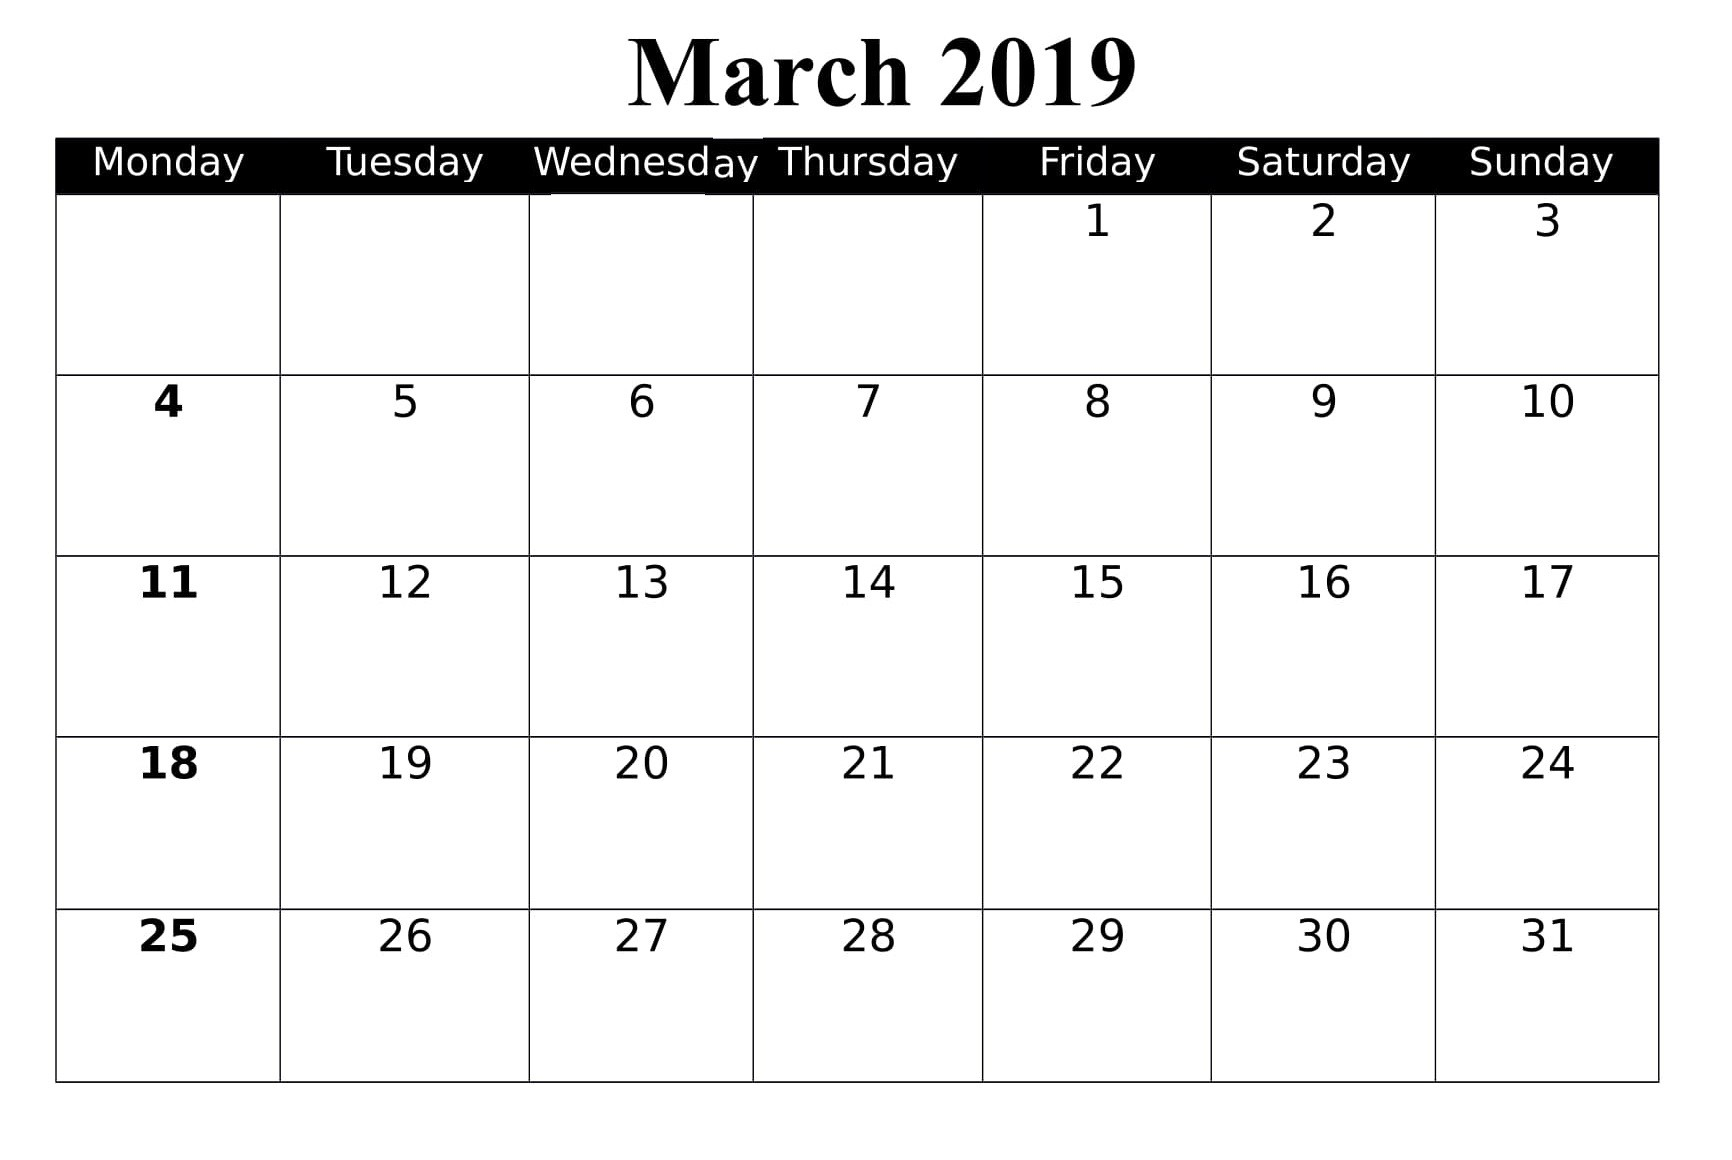 March Calendar 2019 Más Recientes March 2019 Calendar Printable Chart – Best Reviews 2019 Of March Calendar 2019 Más Populares February March Calendar 2019 2018 Printable Calendar Store